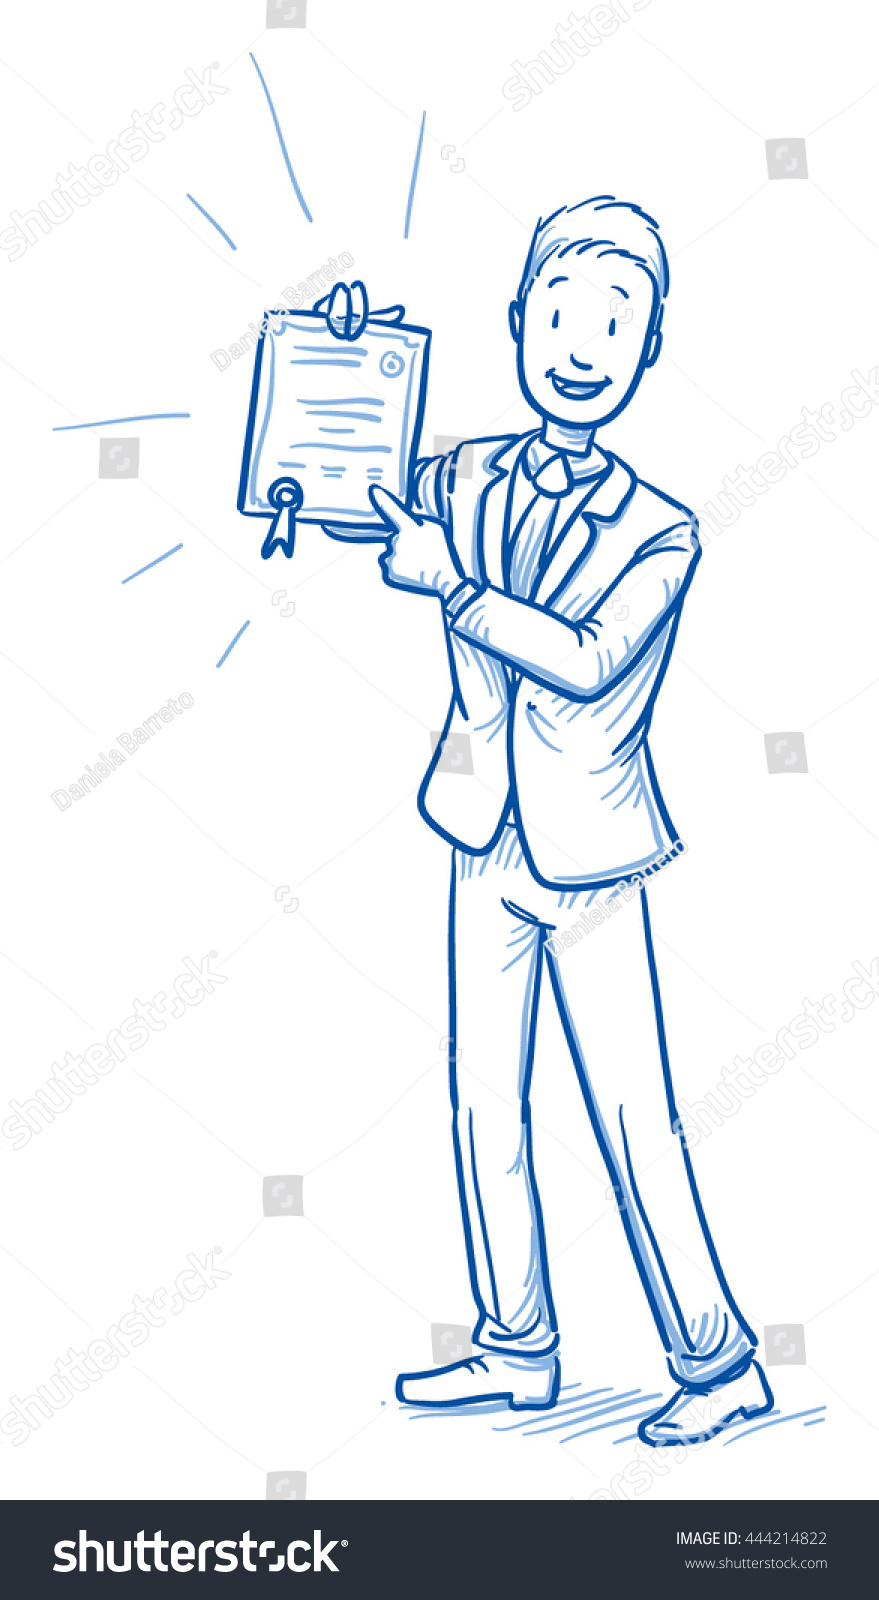 Happy young man in business suit showing his certificate diploma award Hand drawn line art cartoon vector illustration